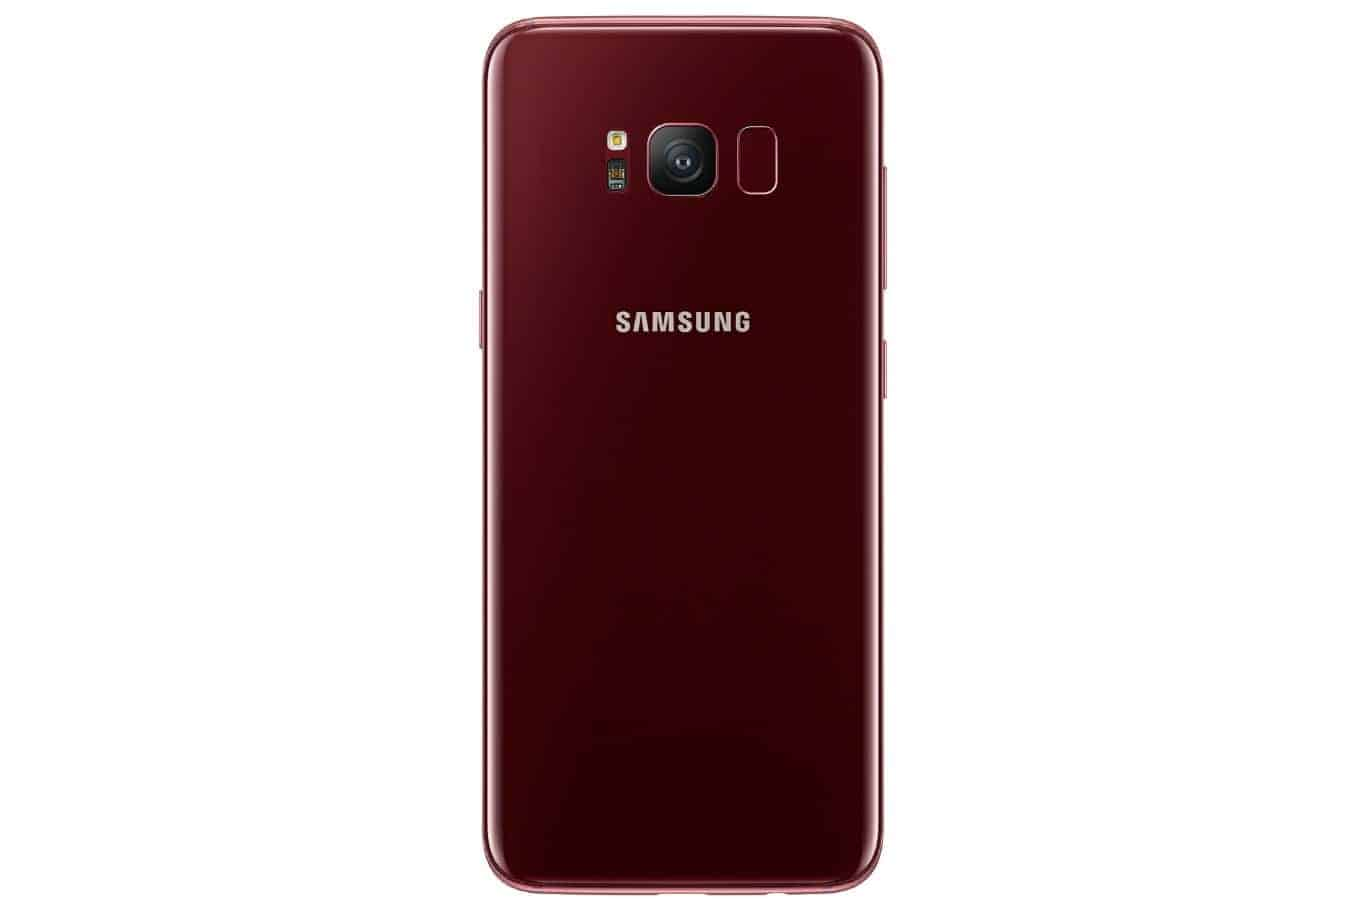 Burgundy Red Galaxy S8 Can Now Be Purchased In South Korea ...